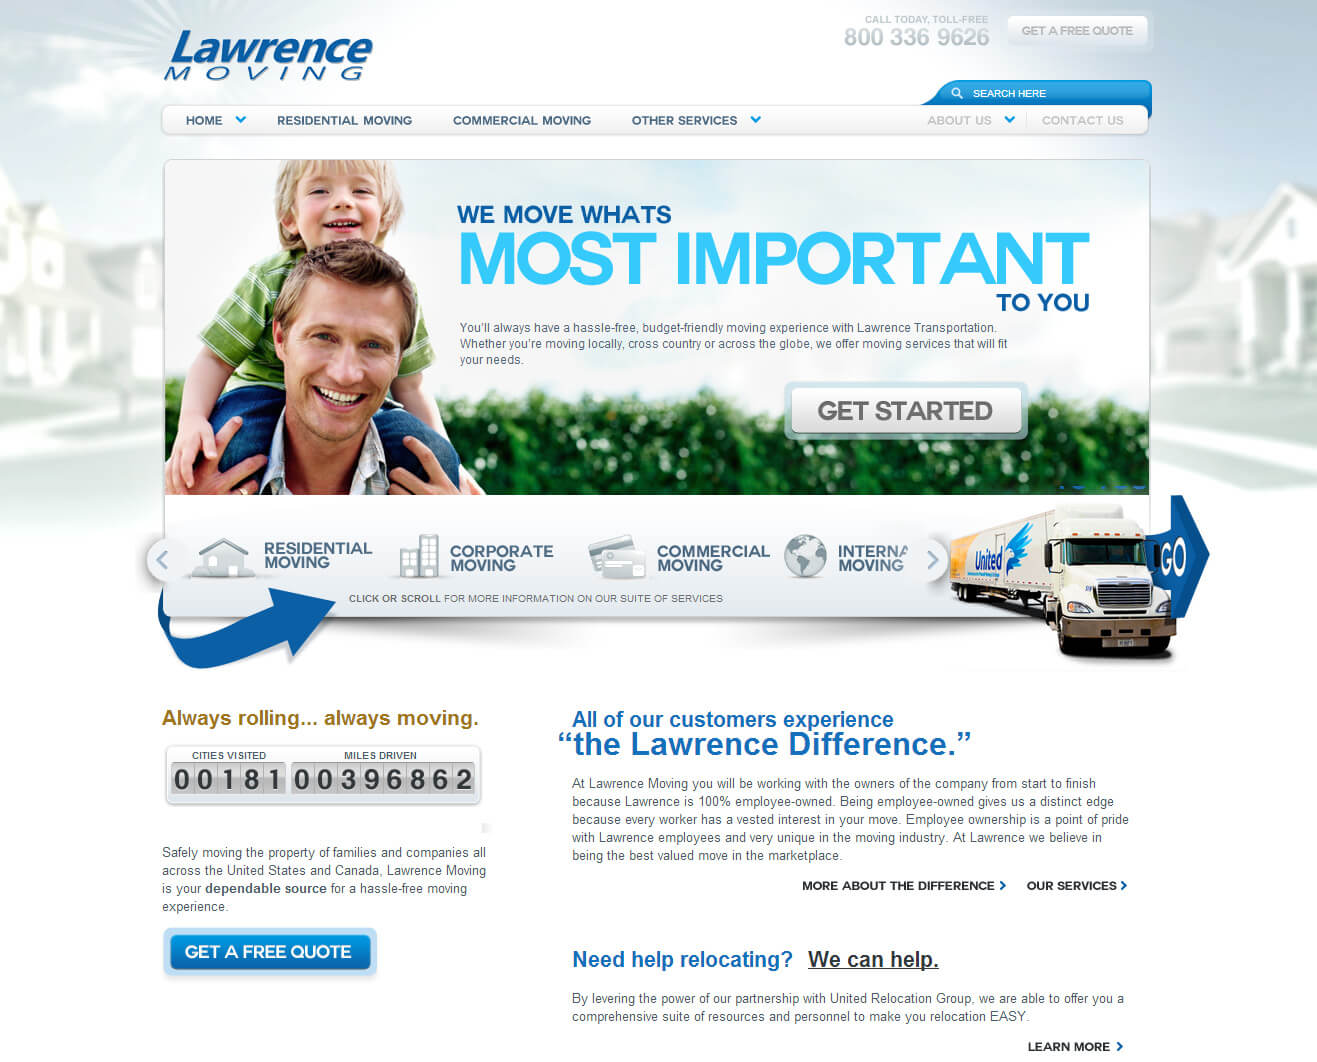 Lawrence Transportation